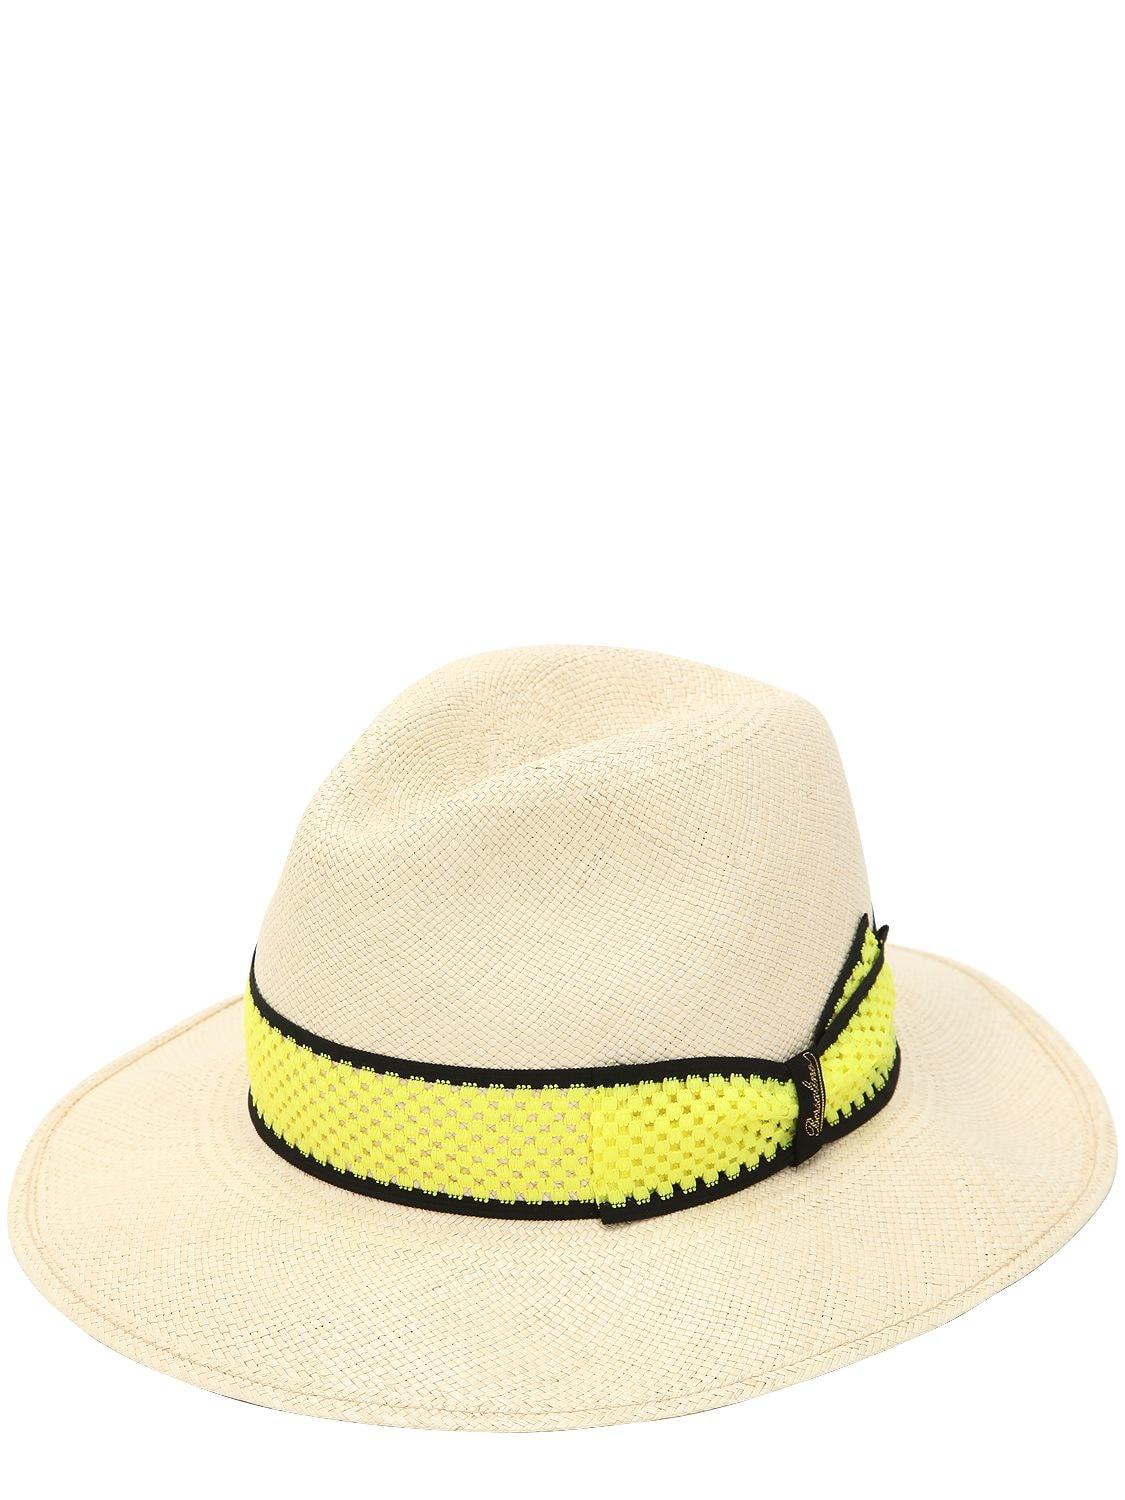 Borsalino Quito Large Panama Hat in Yellow for Men - Lyst e8877dd85052